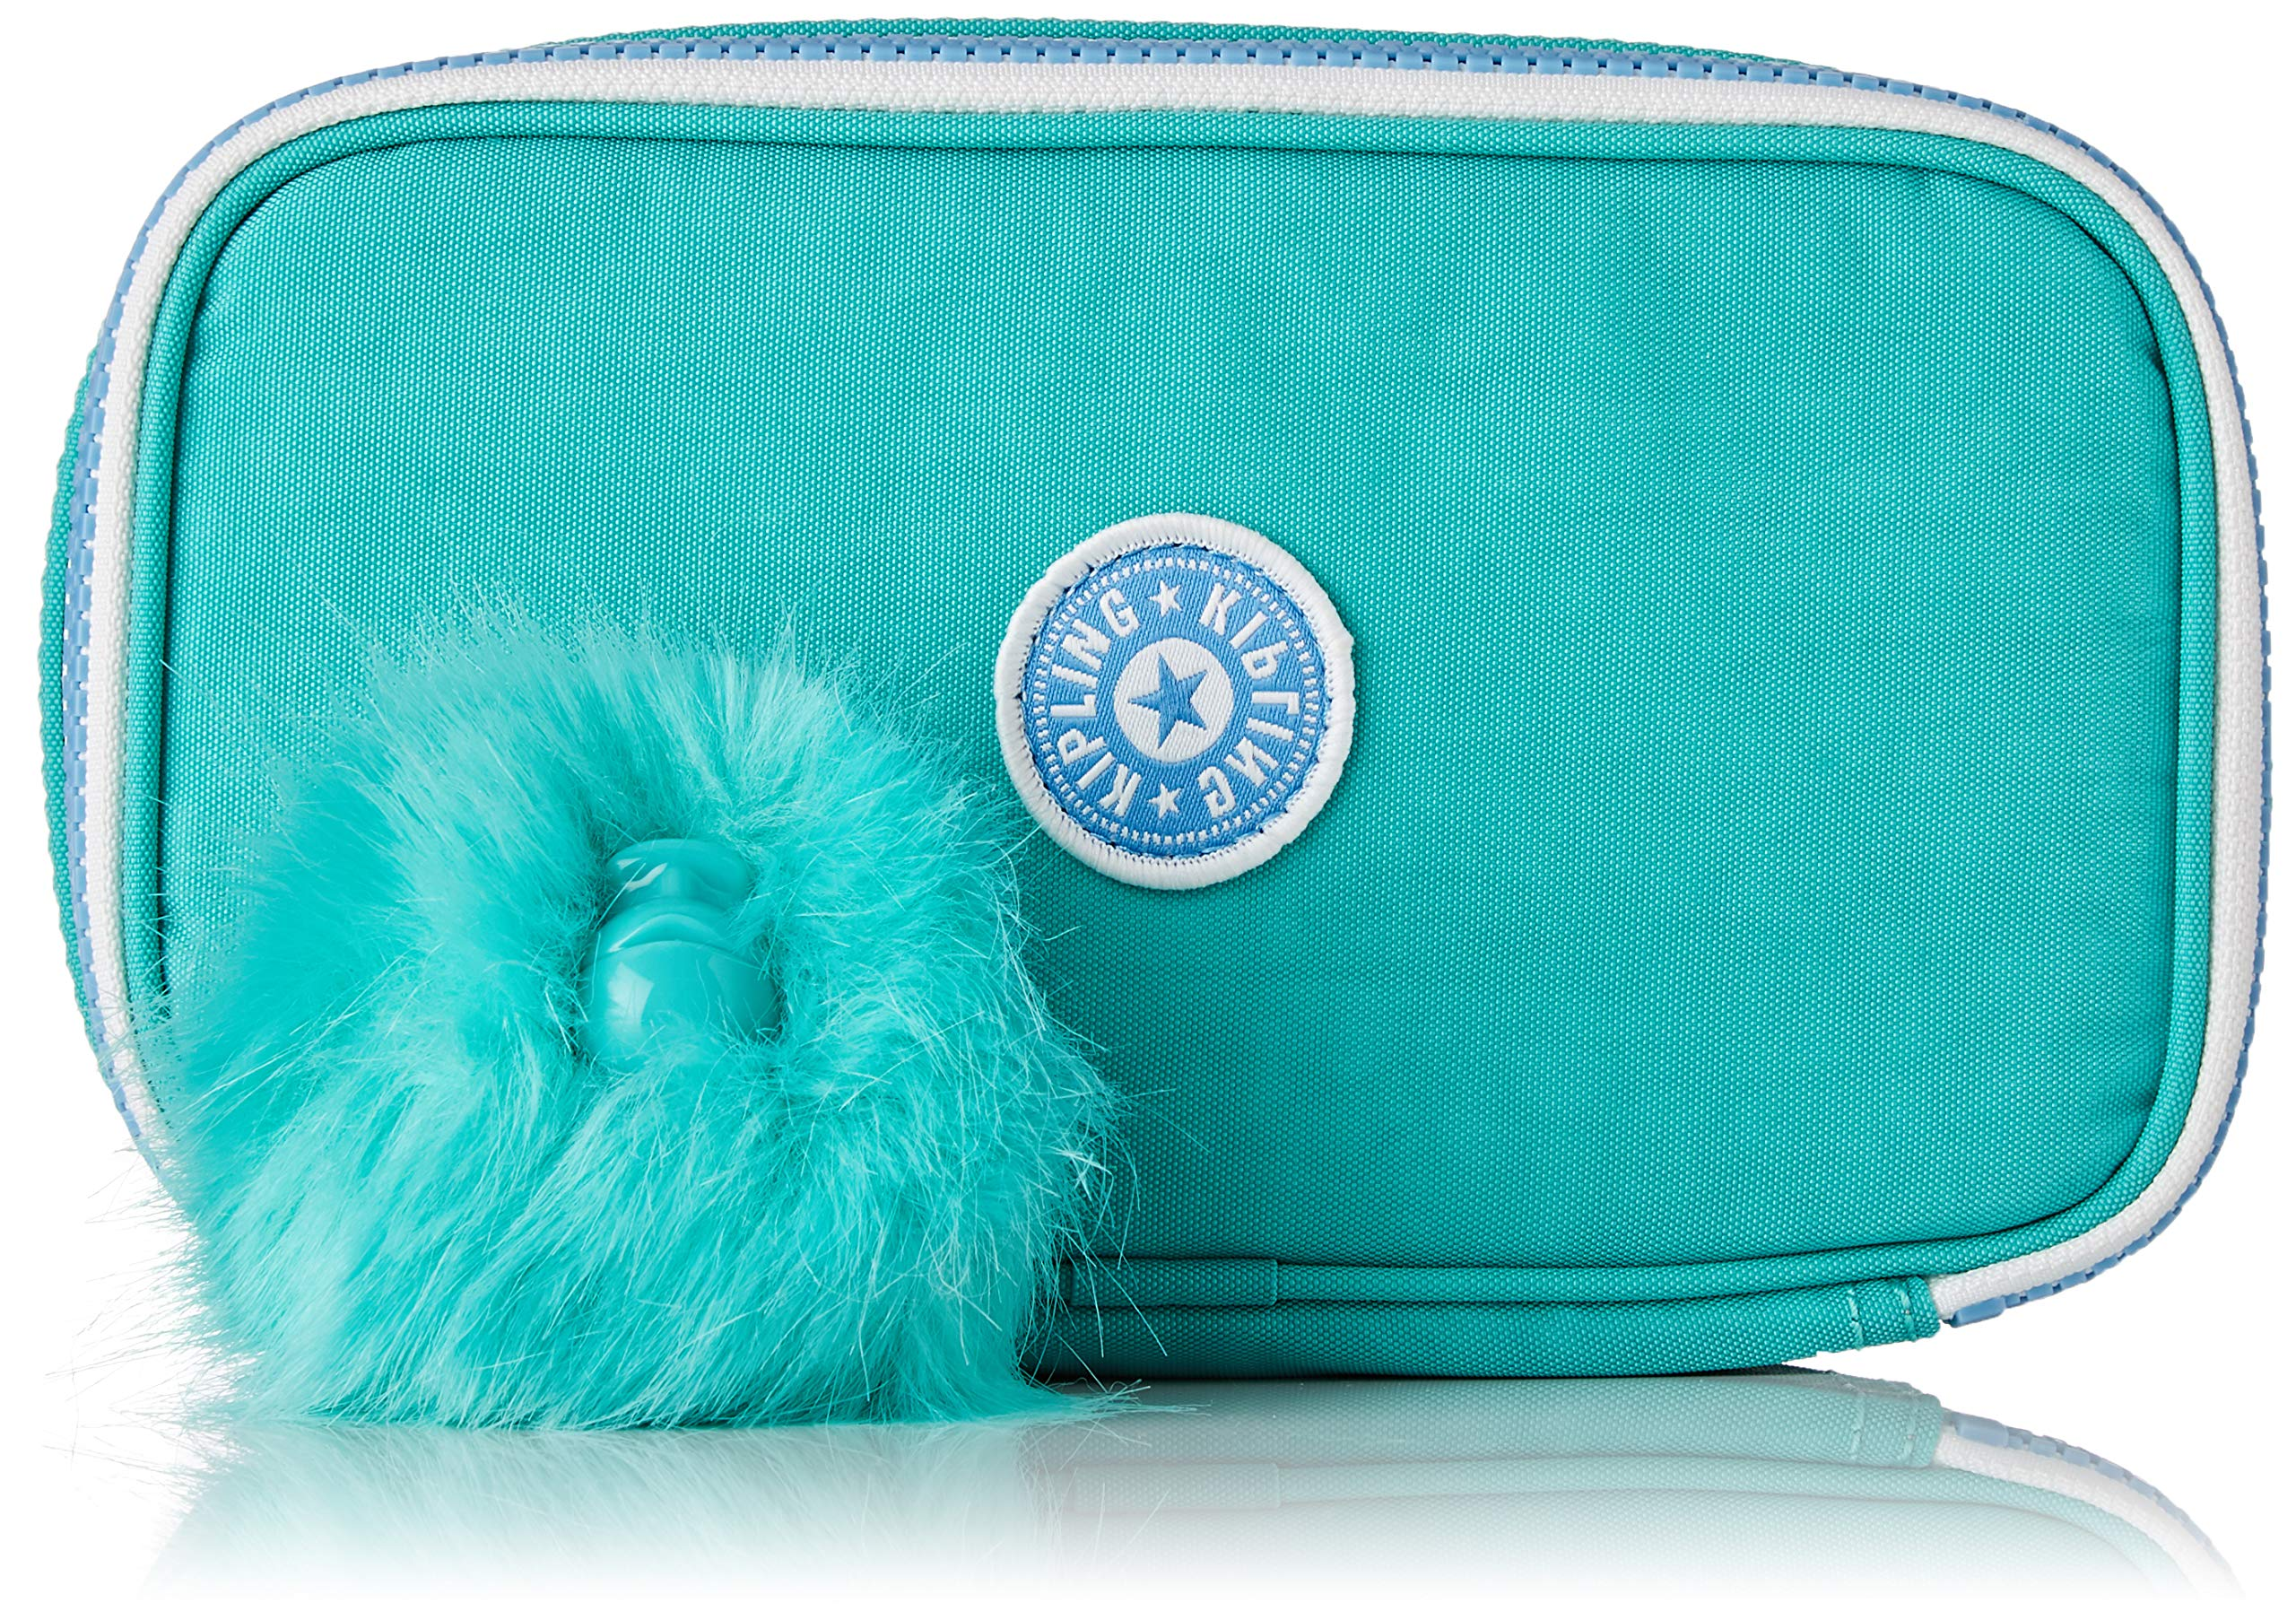 Kipling 50 Pens Estuches, 21 Centimeters